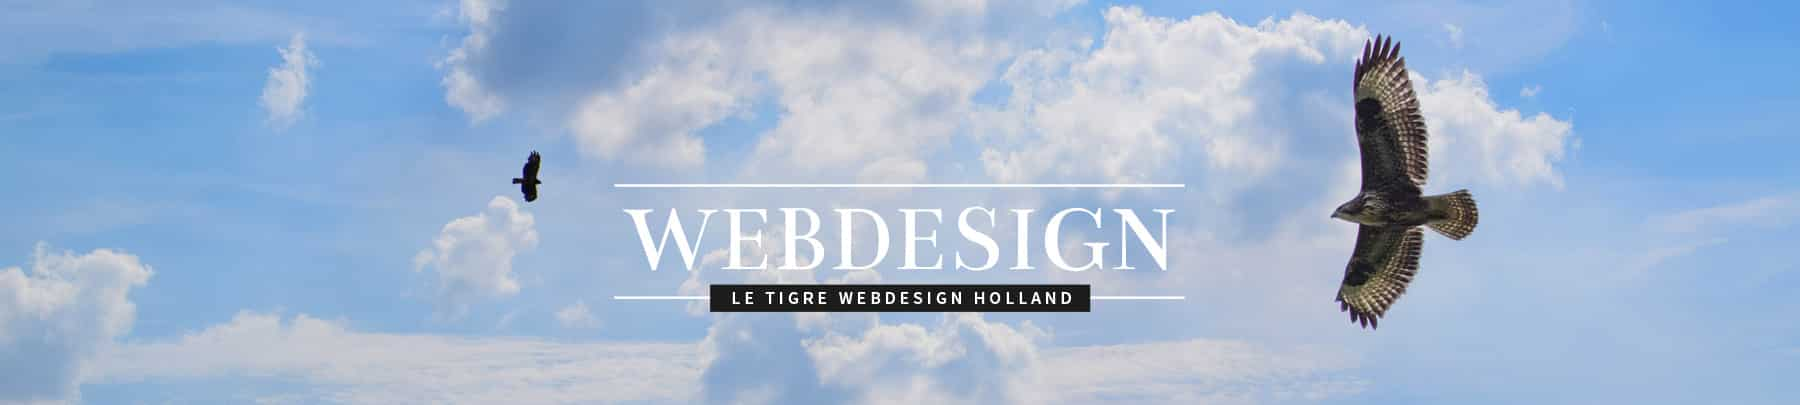 Webdesign Holland - Responsive websites met CMS